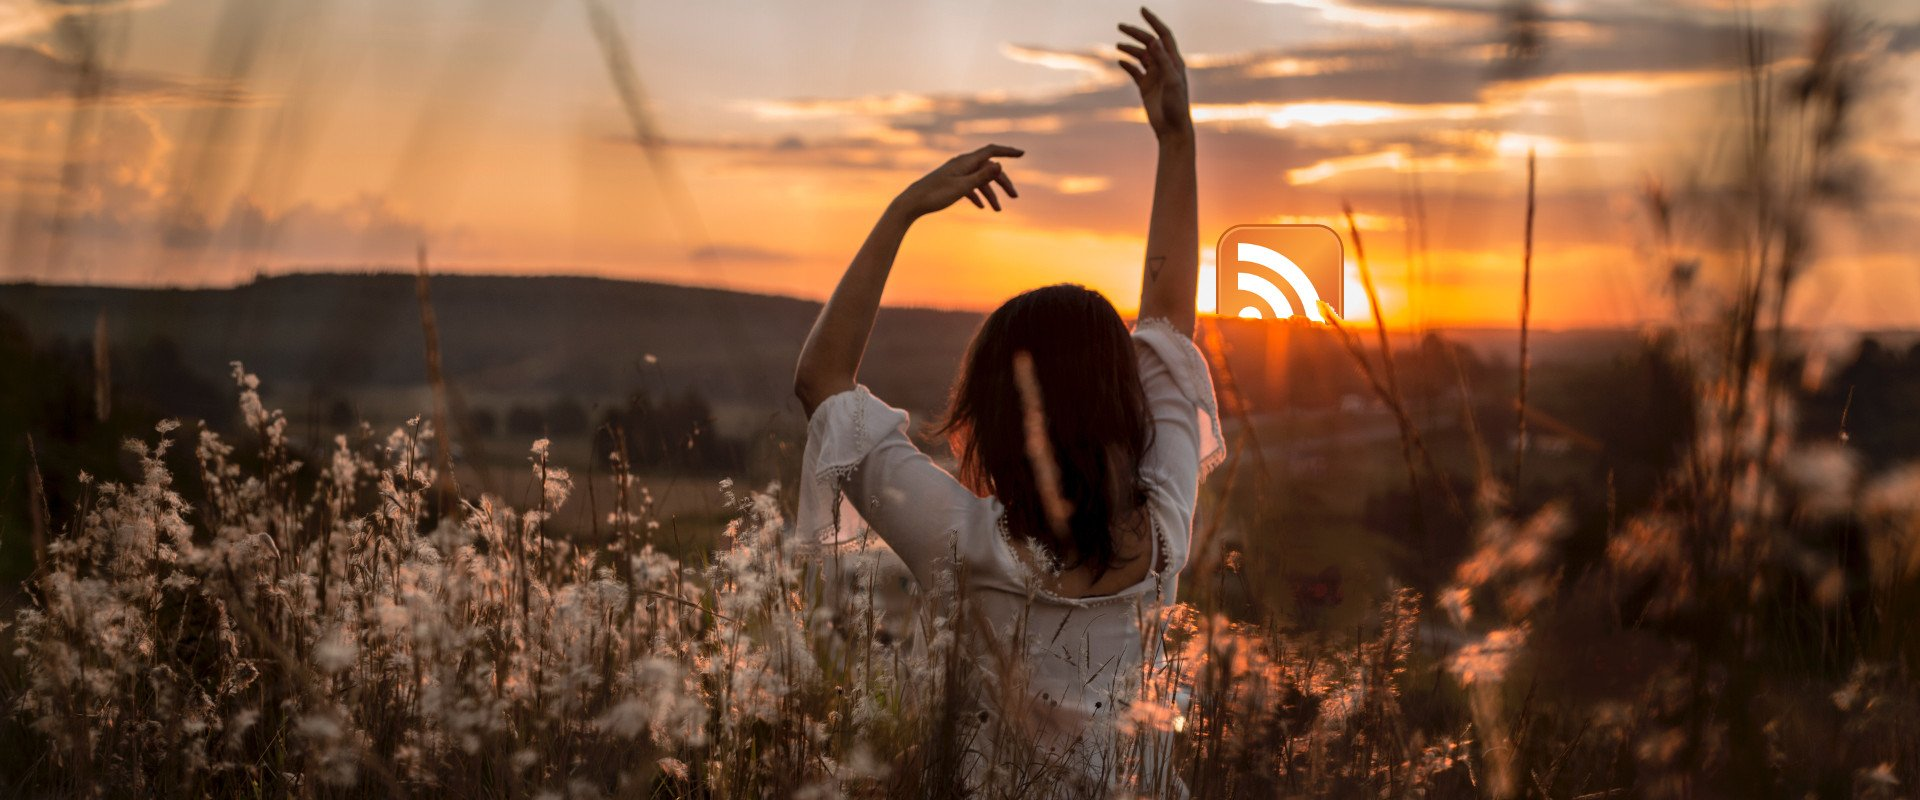 A woman standing in front of a sunrise with the RSS logo.